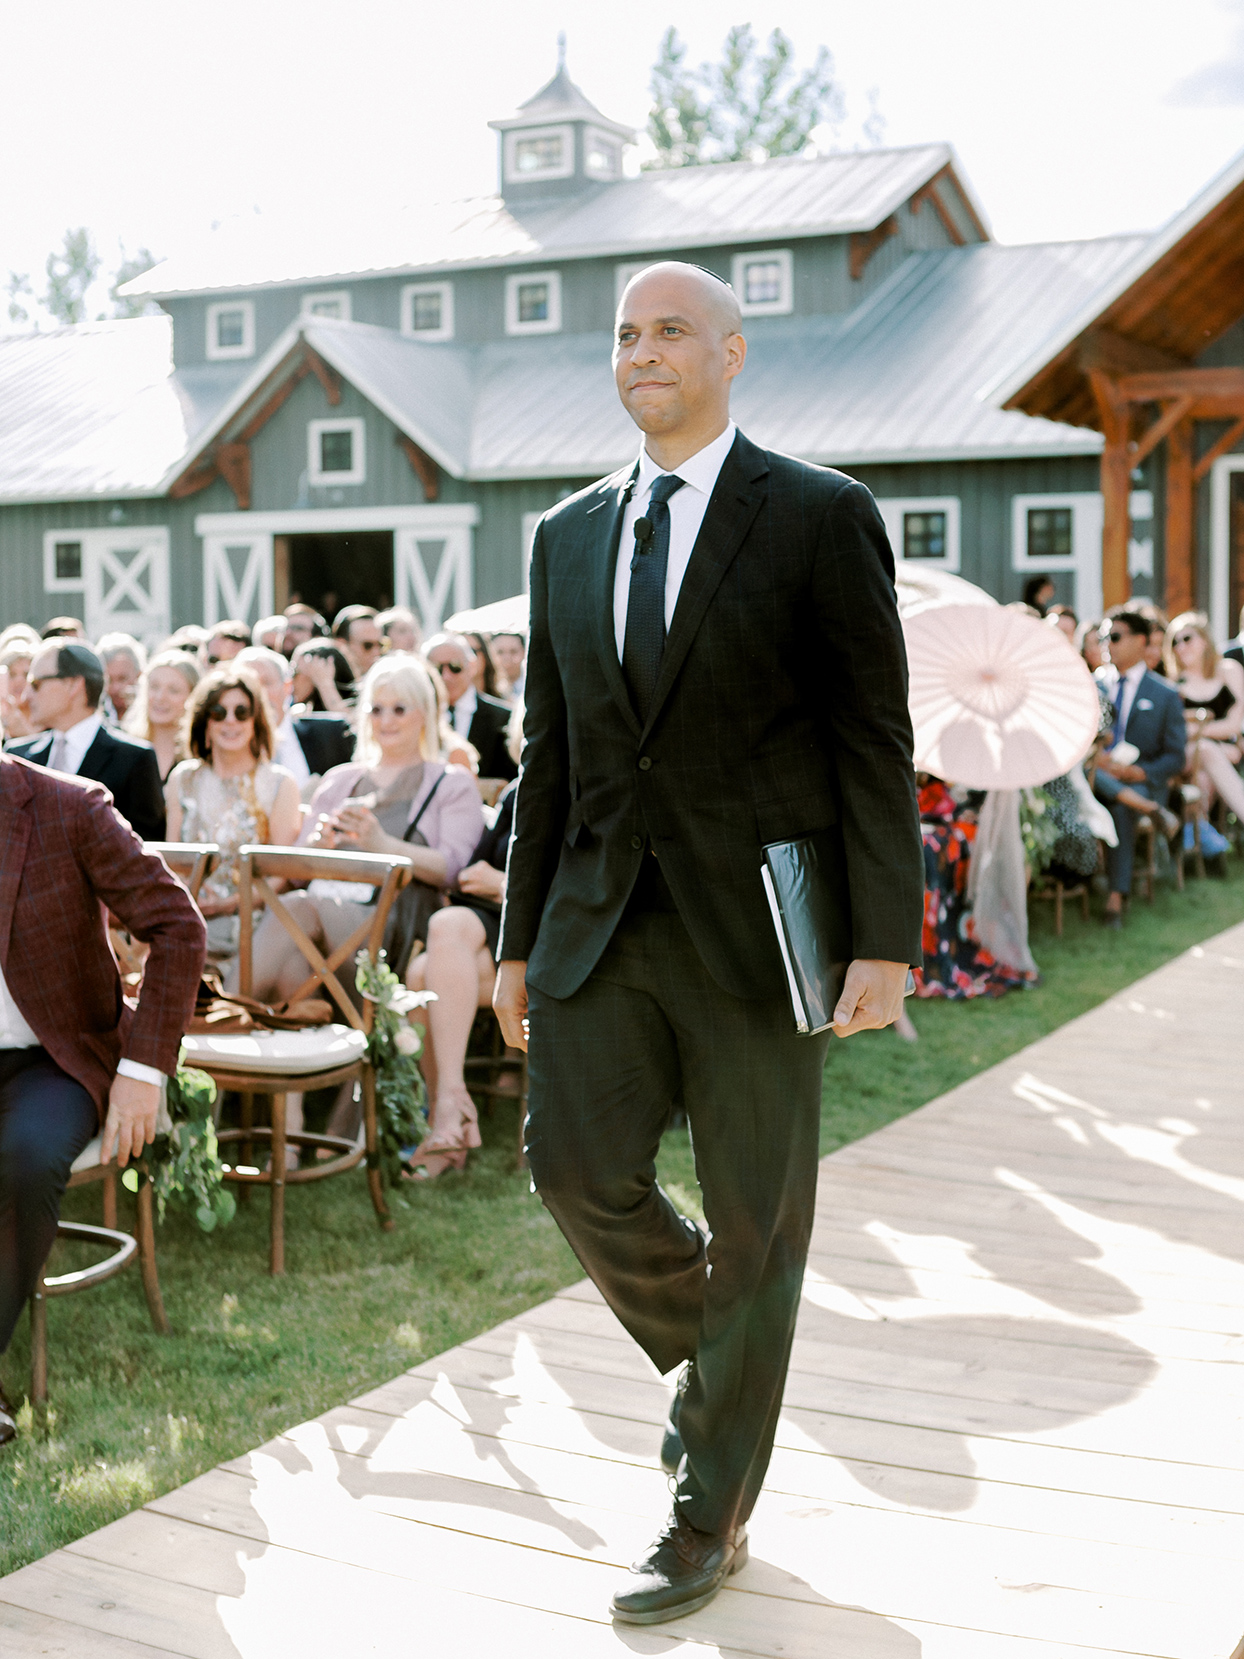 jessica aaron wedding officiant cory booker walking up aisle